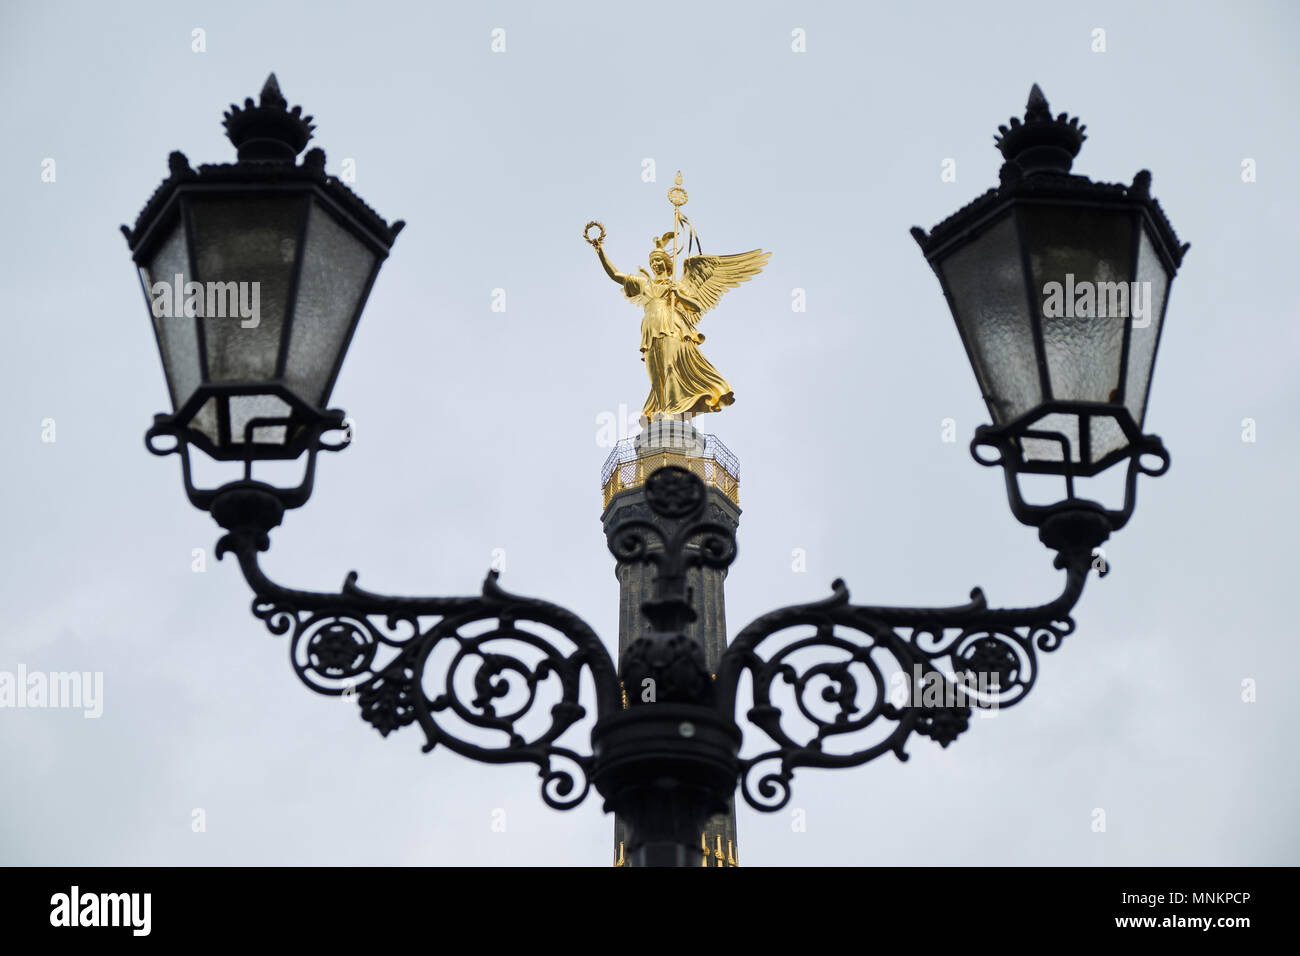 Berlin, Germany - April 14, 2018: The statue of Victoria on the top of the Victory Column in Tiergarten with lantern lamps on the foreground - Stock Image